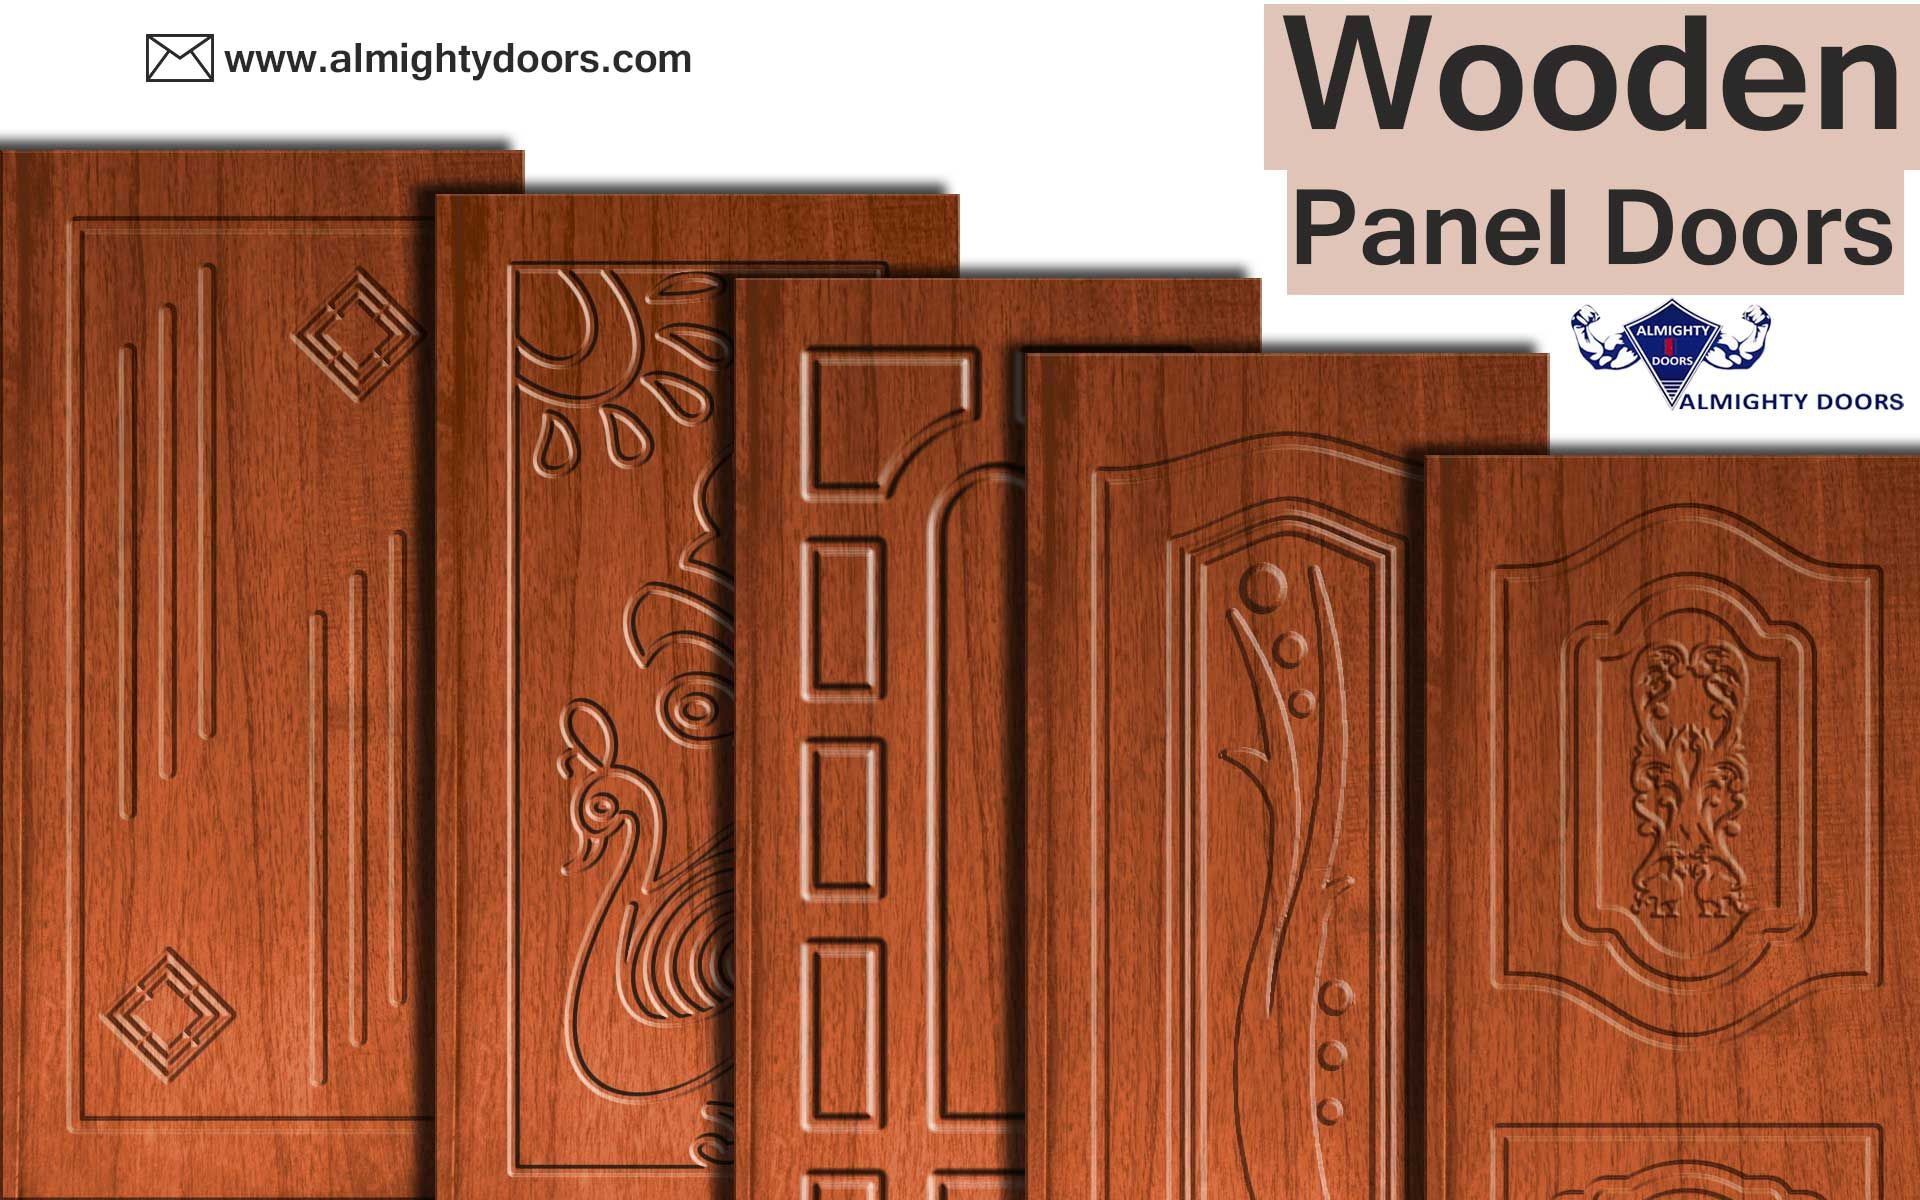 Almighty Doors Is One Of The Popular Supplier Of Wooden